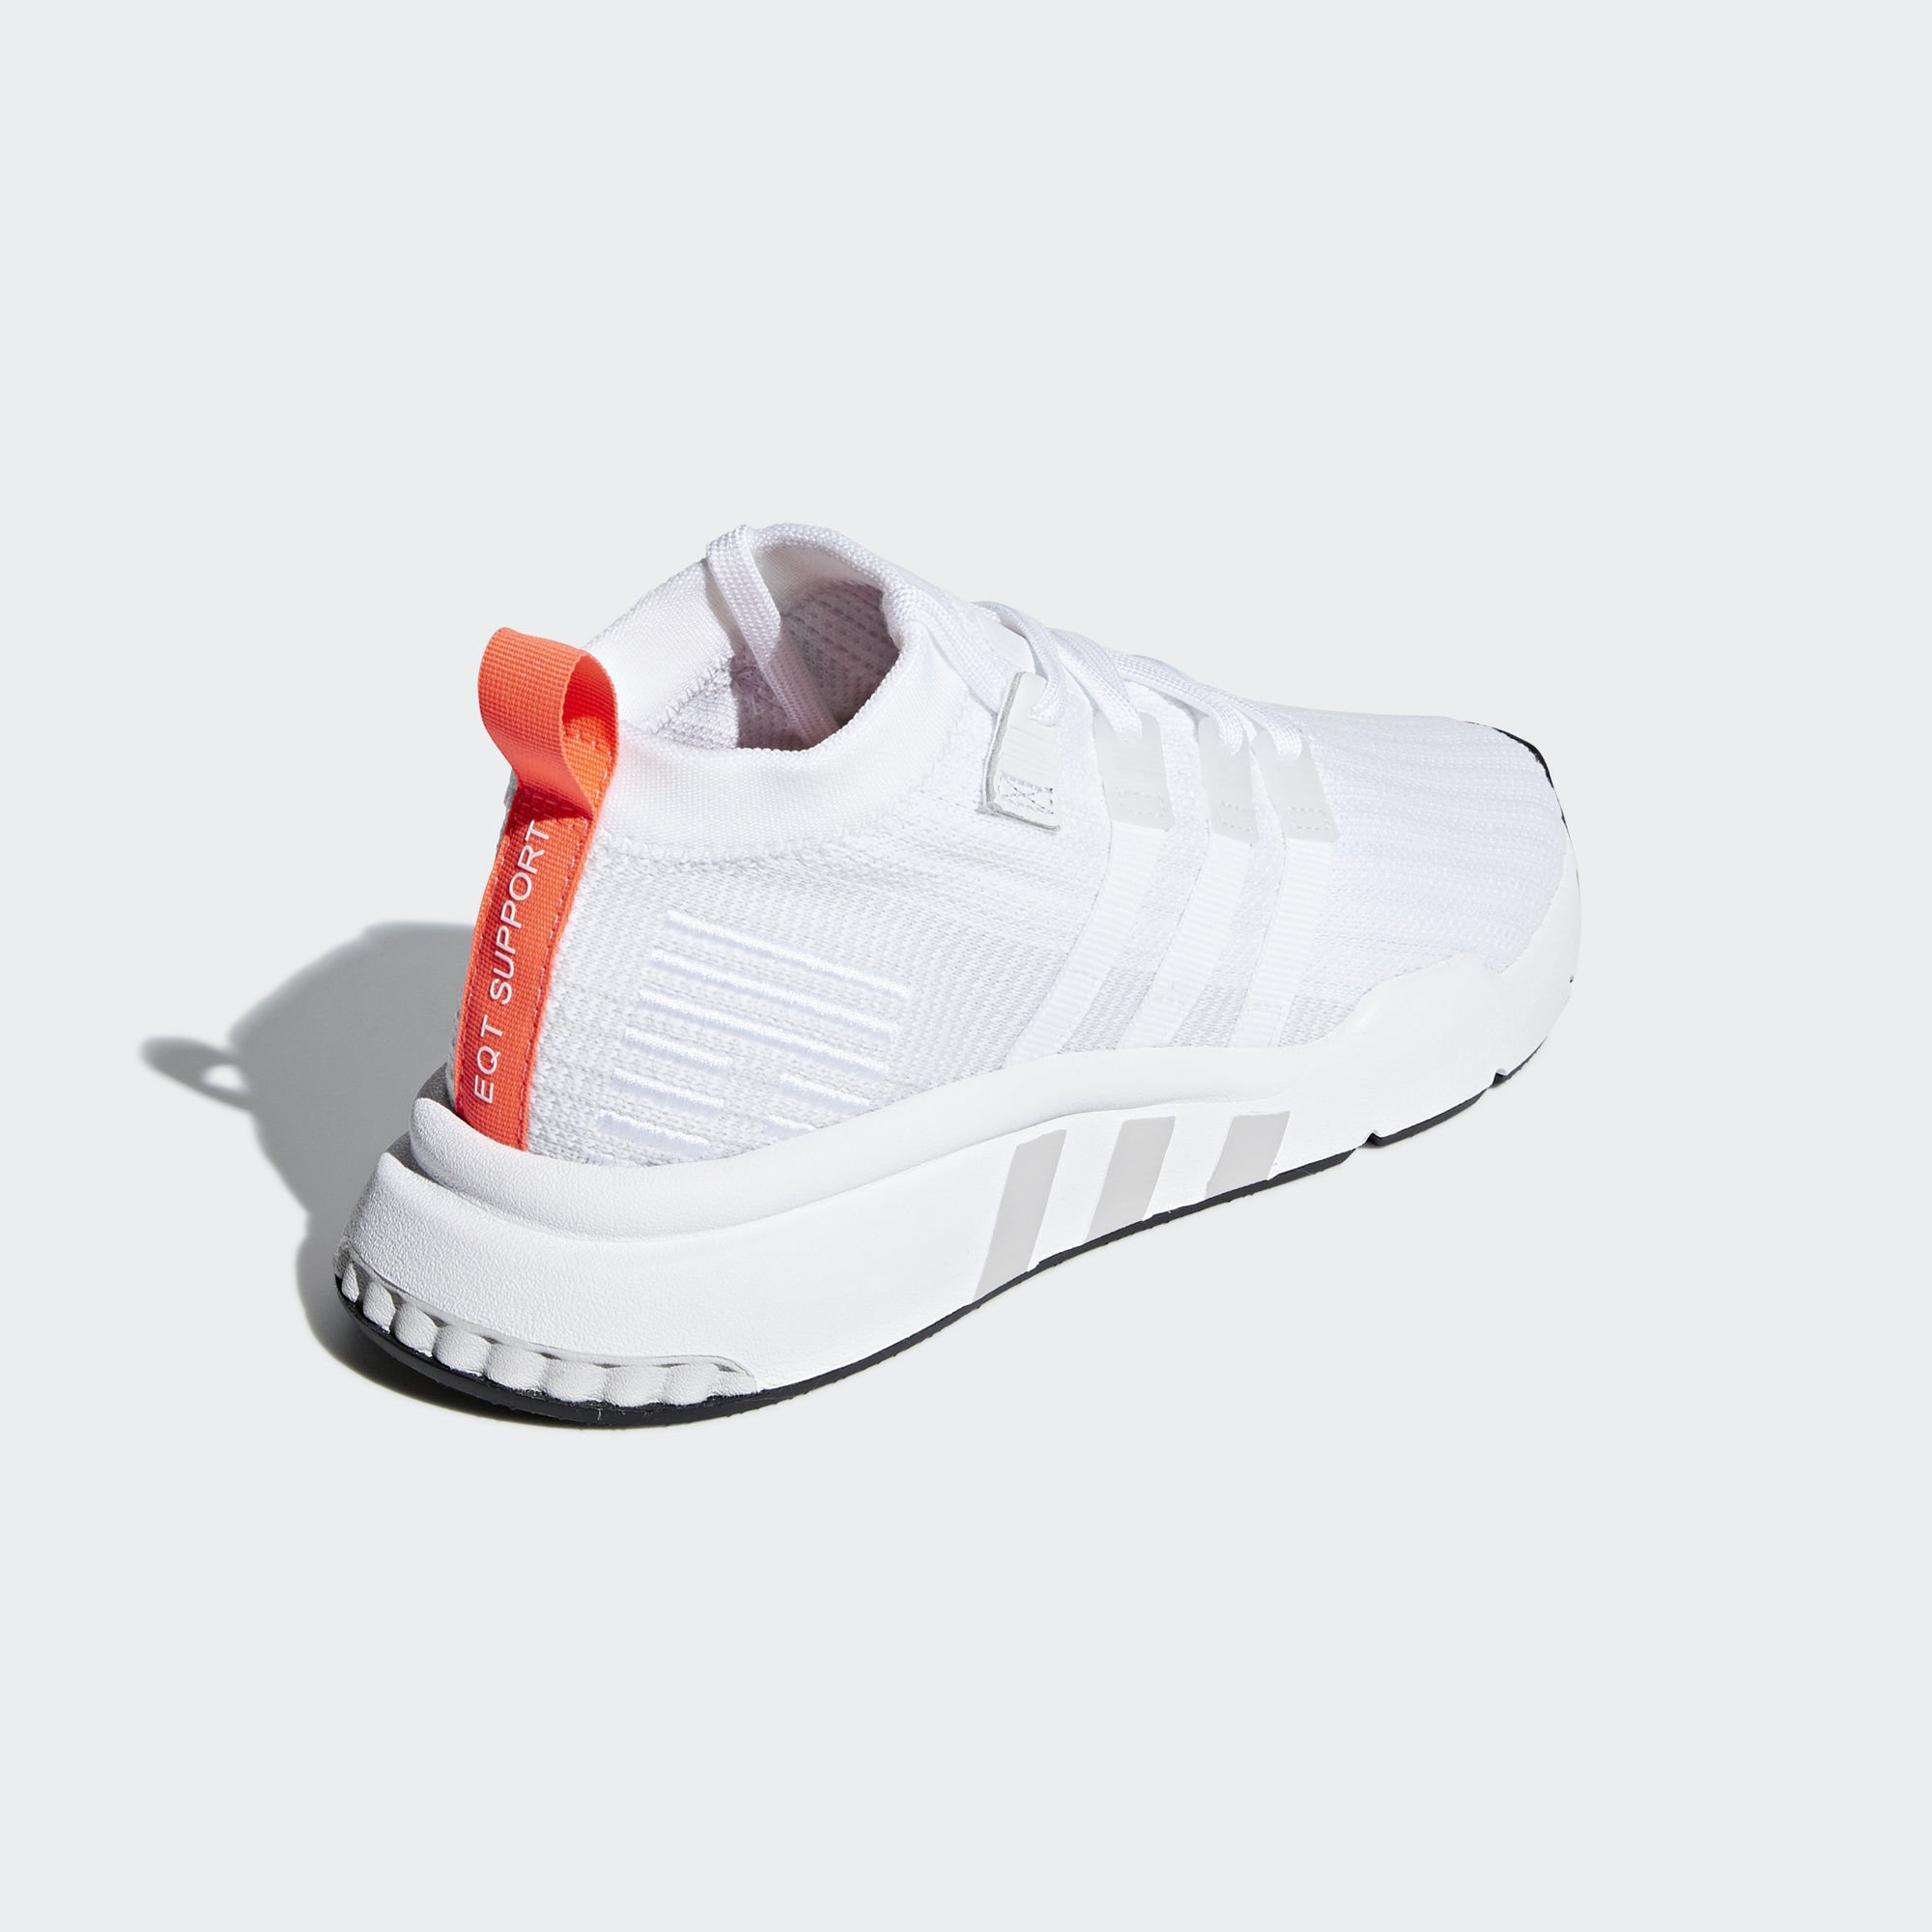 adidas EQT Support Mid White (B28133)